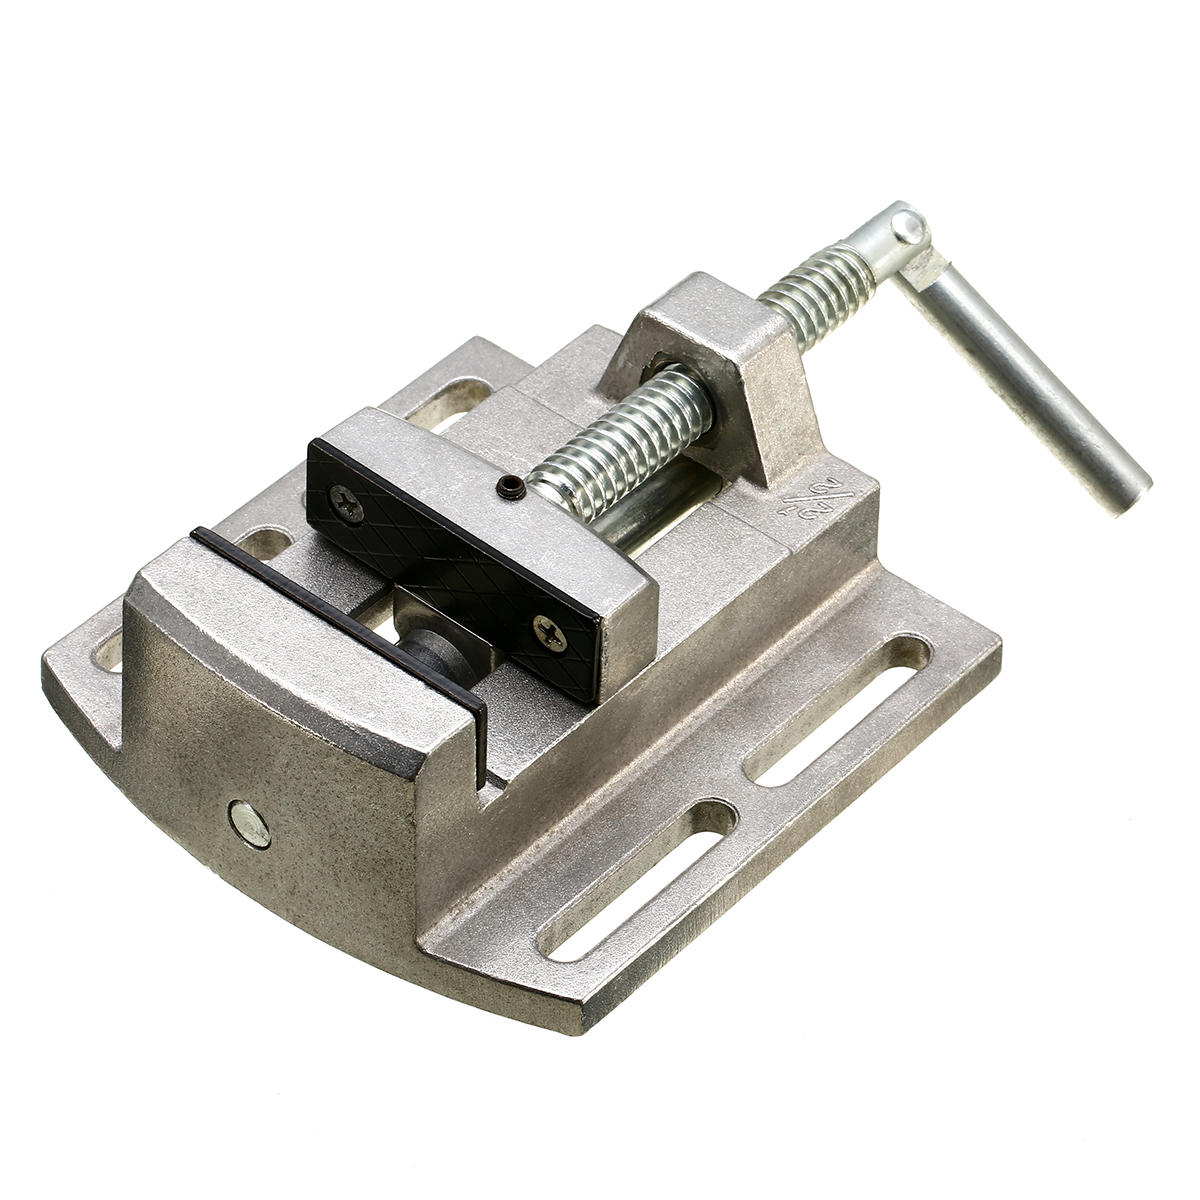 1pc Aluminum Alloy Bench Drill Vise Clamp Jaw Table Vice Grinding Drilling Flat Pliers CNC Worktable Milling Machine Tool aluminium alloy flat tongs vice cnc milling machine tools bench drill vise fixture